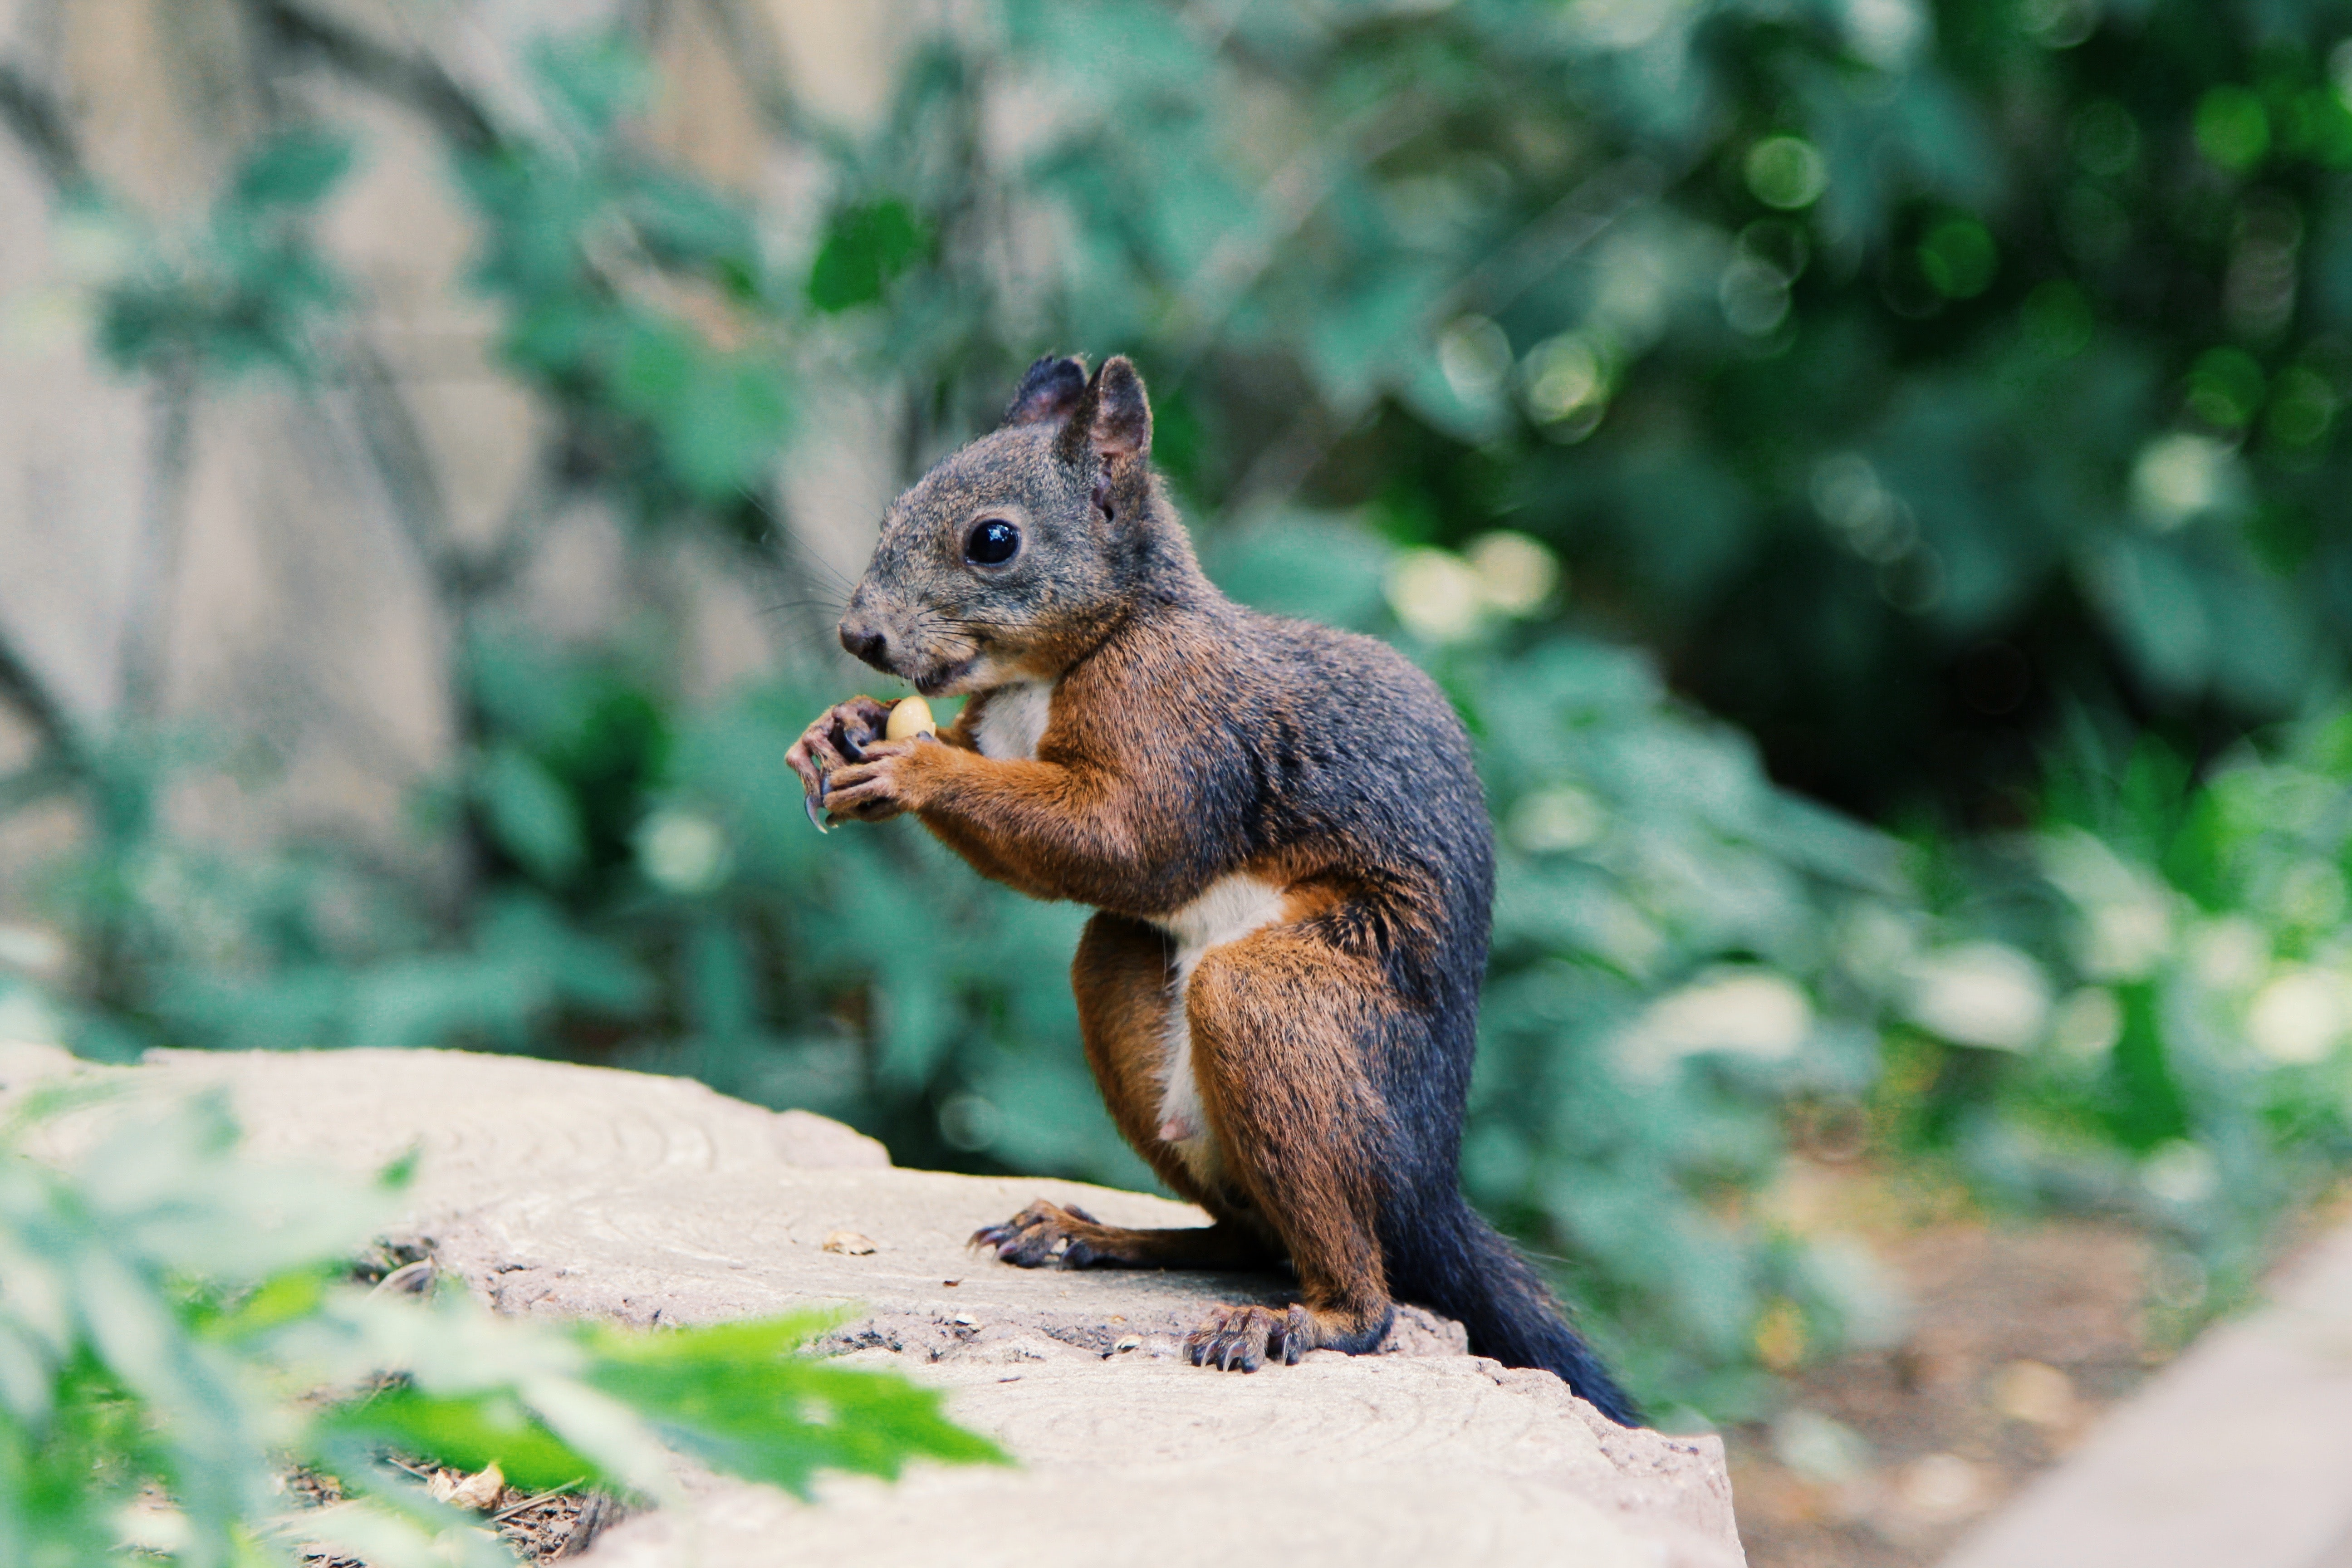 Cute squirrel eating a seed outside